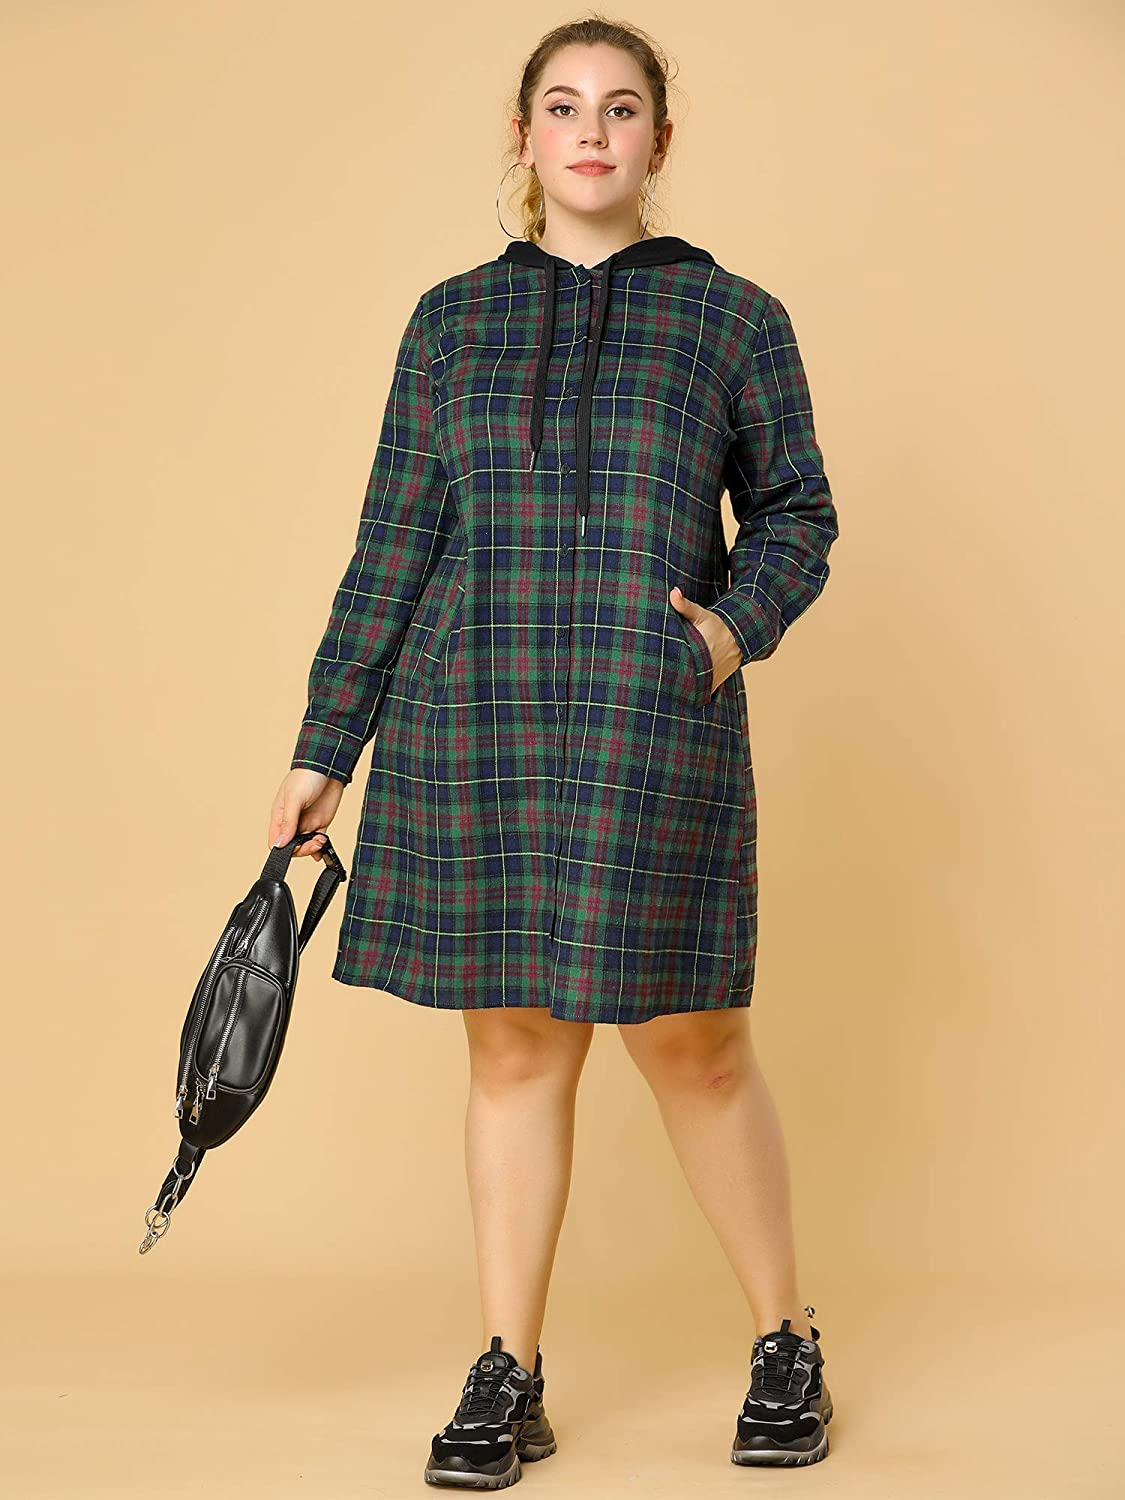 Green and Black Plaid Puff Sleeve Dress Size large  Extra Large Patrick/'s Day Dress plus size St